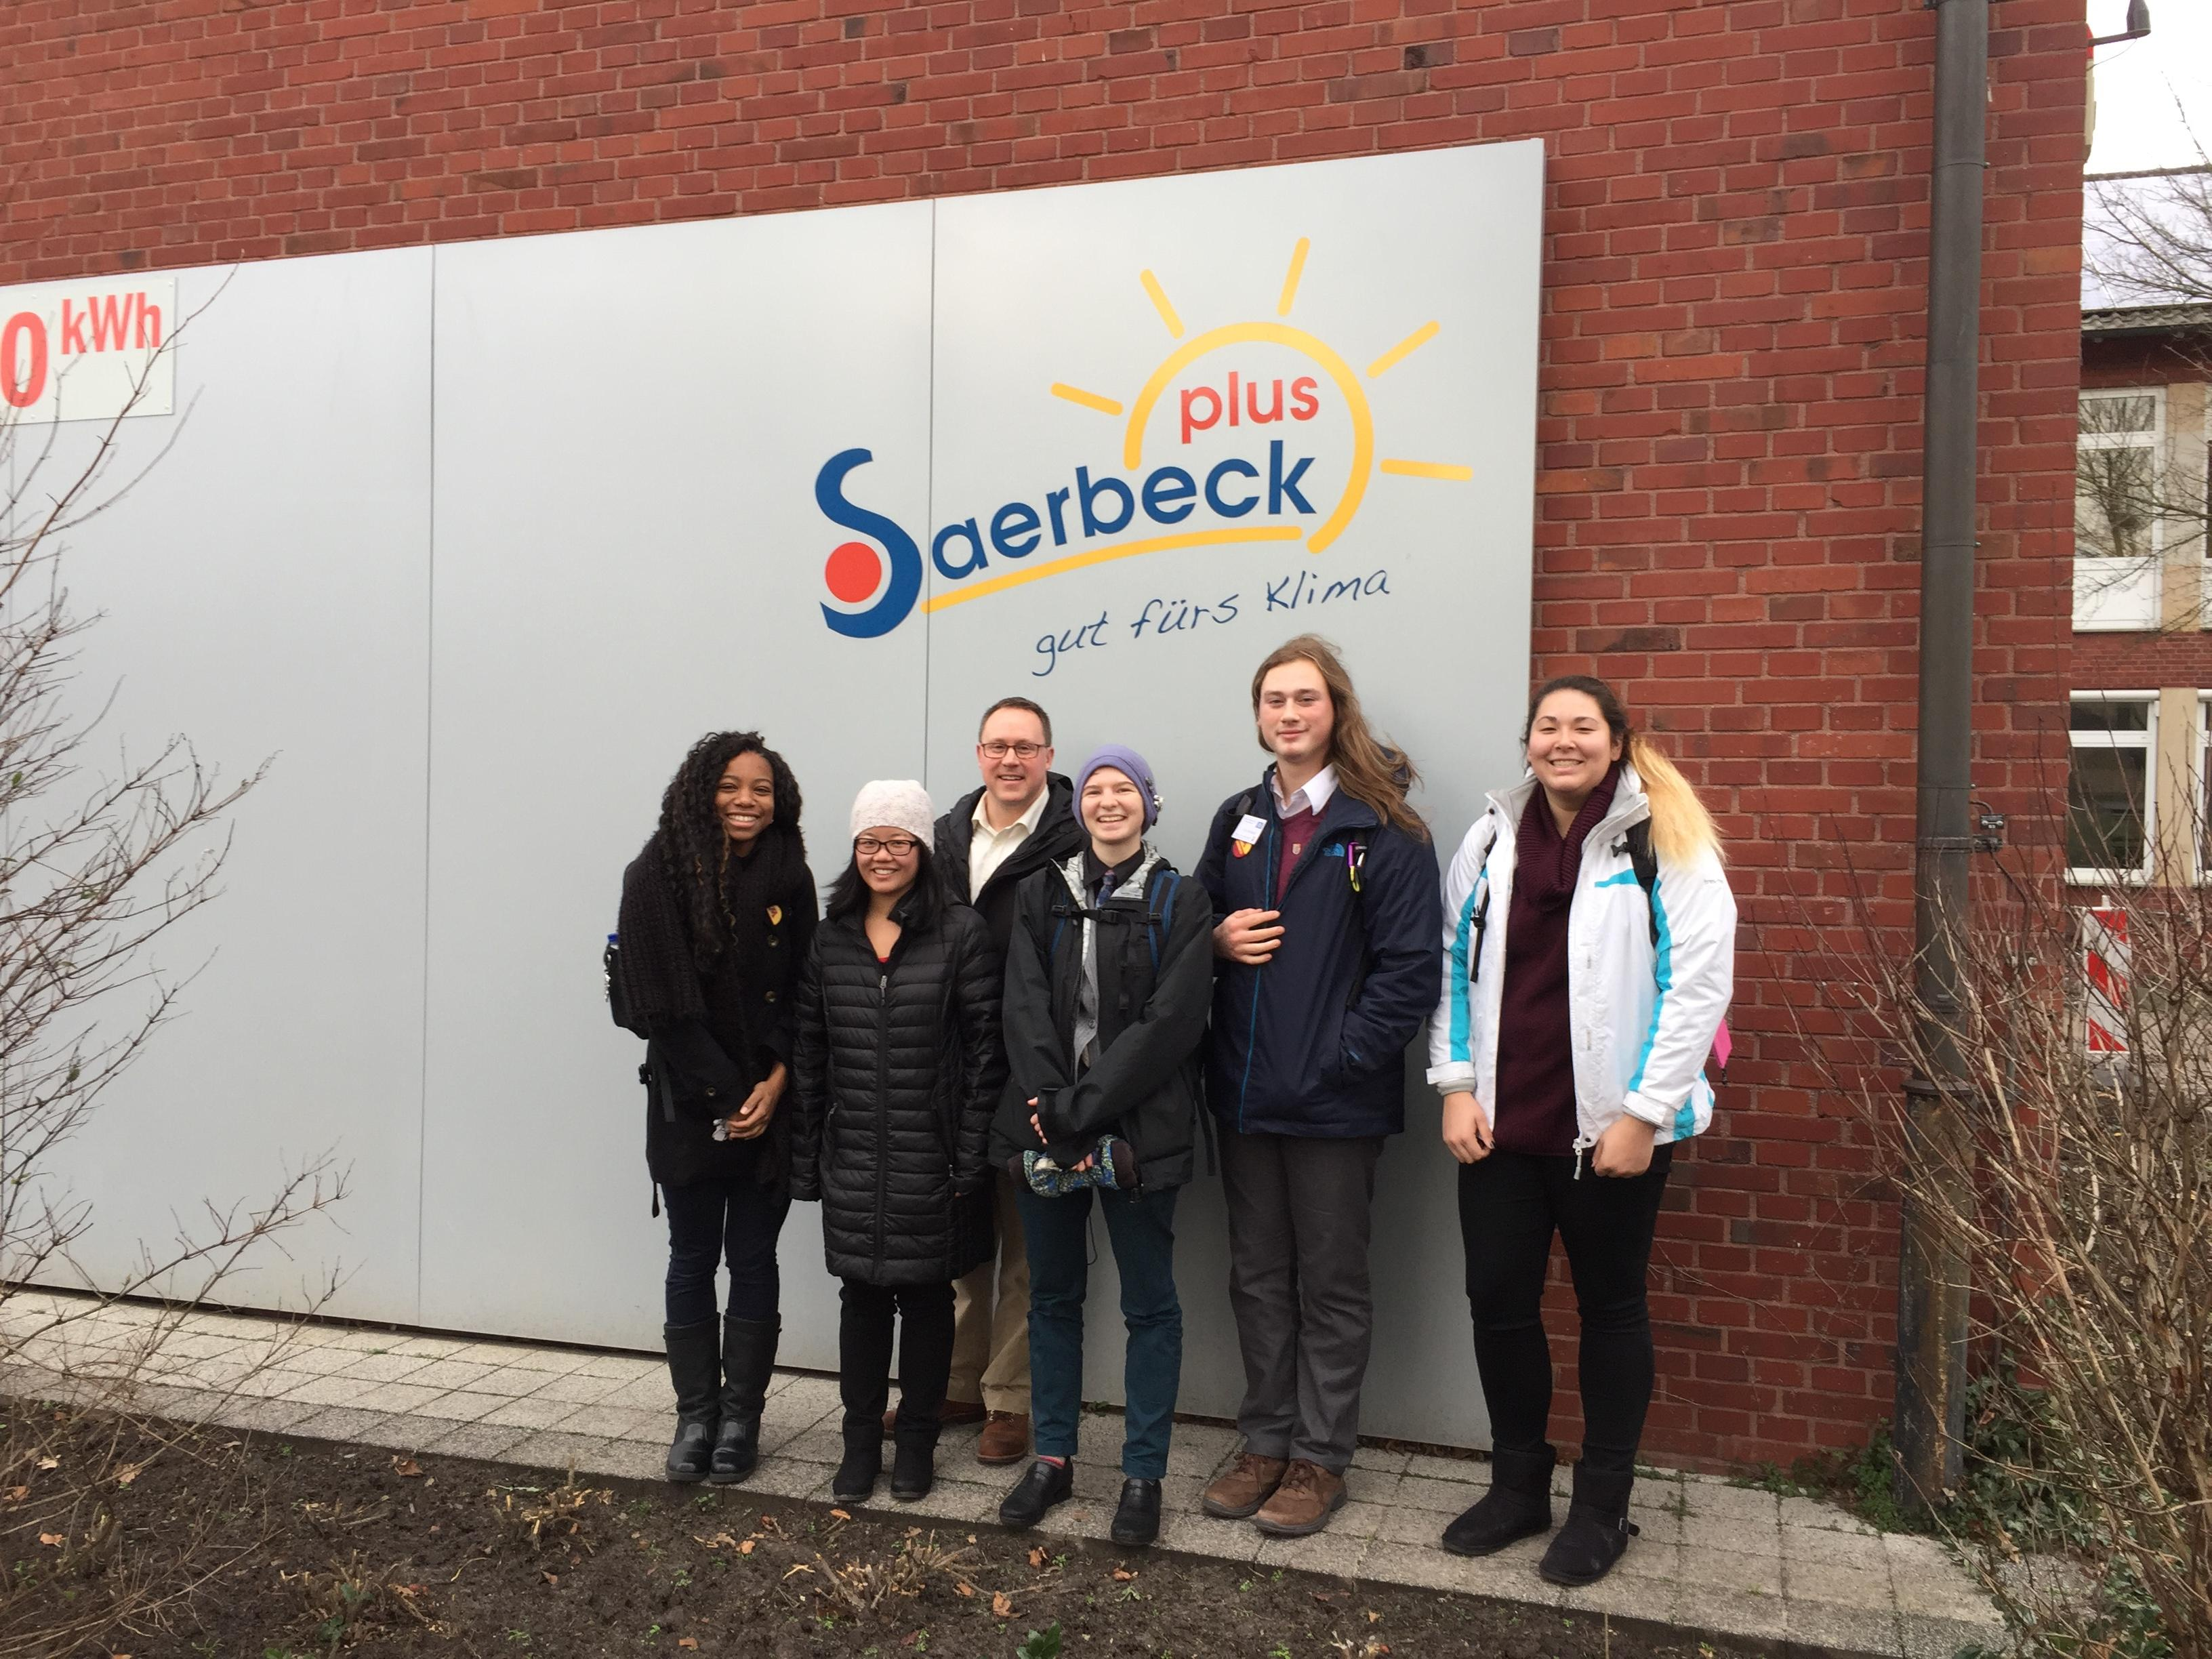 UMN Morris students and staff in Saerbeck, Germany